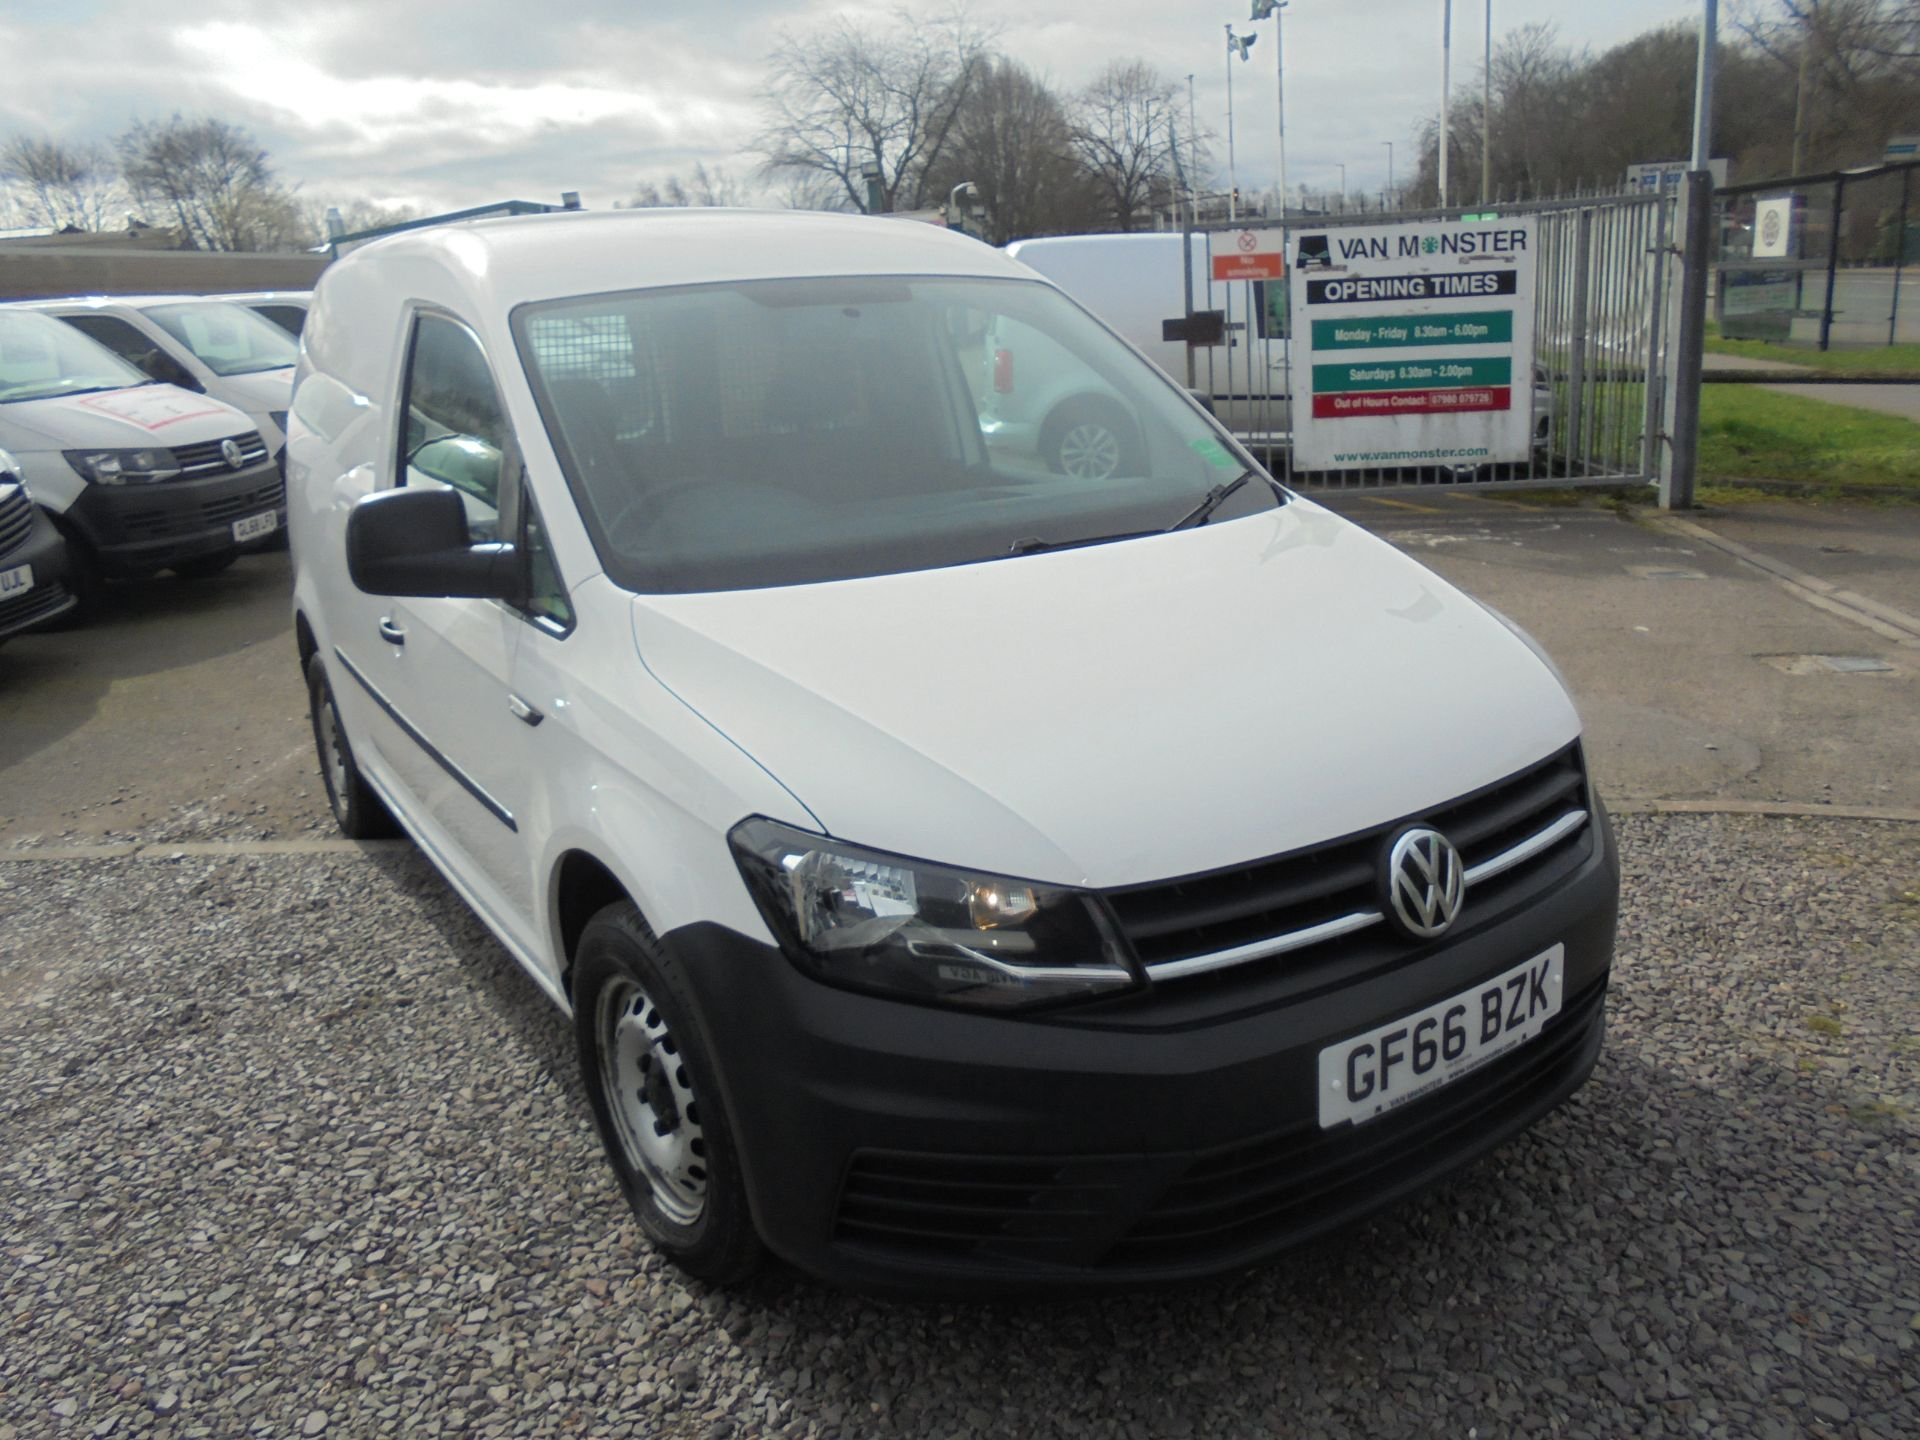 2016 Volkswagen Caddy 1.6 TDI BLUEMOTION TECH 75PS EURO 5 (GF66BZK)